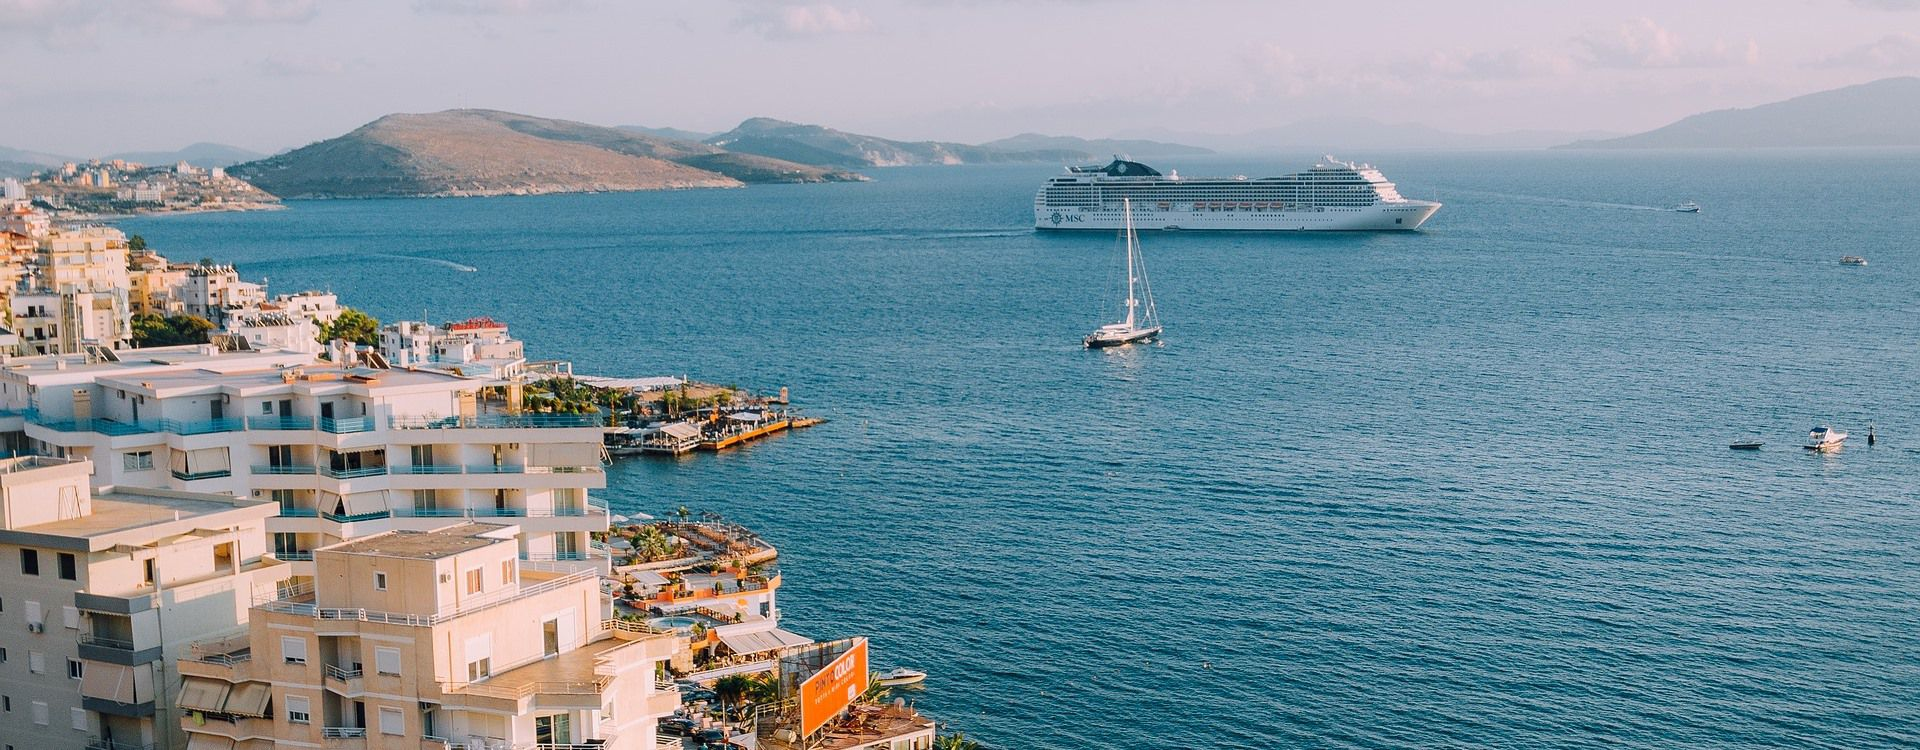 Best cruises holidays from the UK